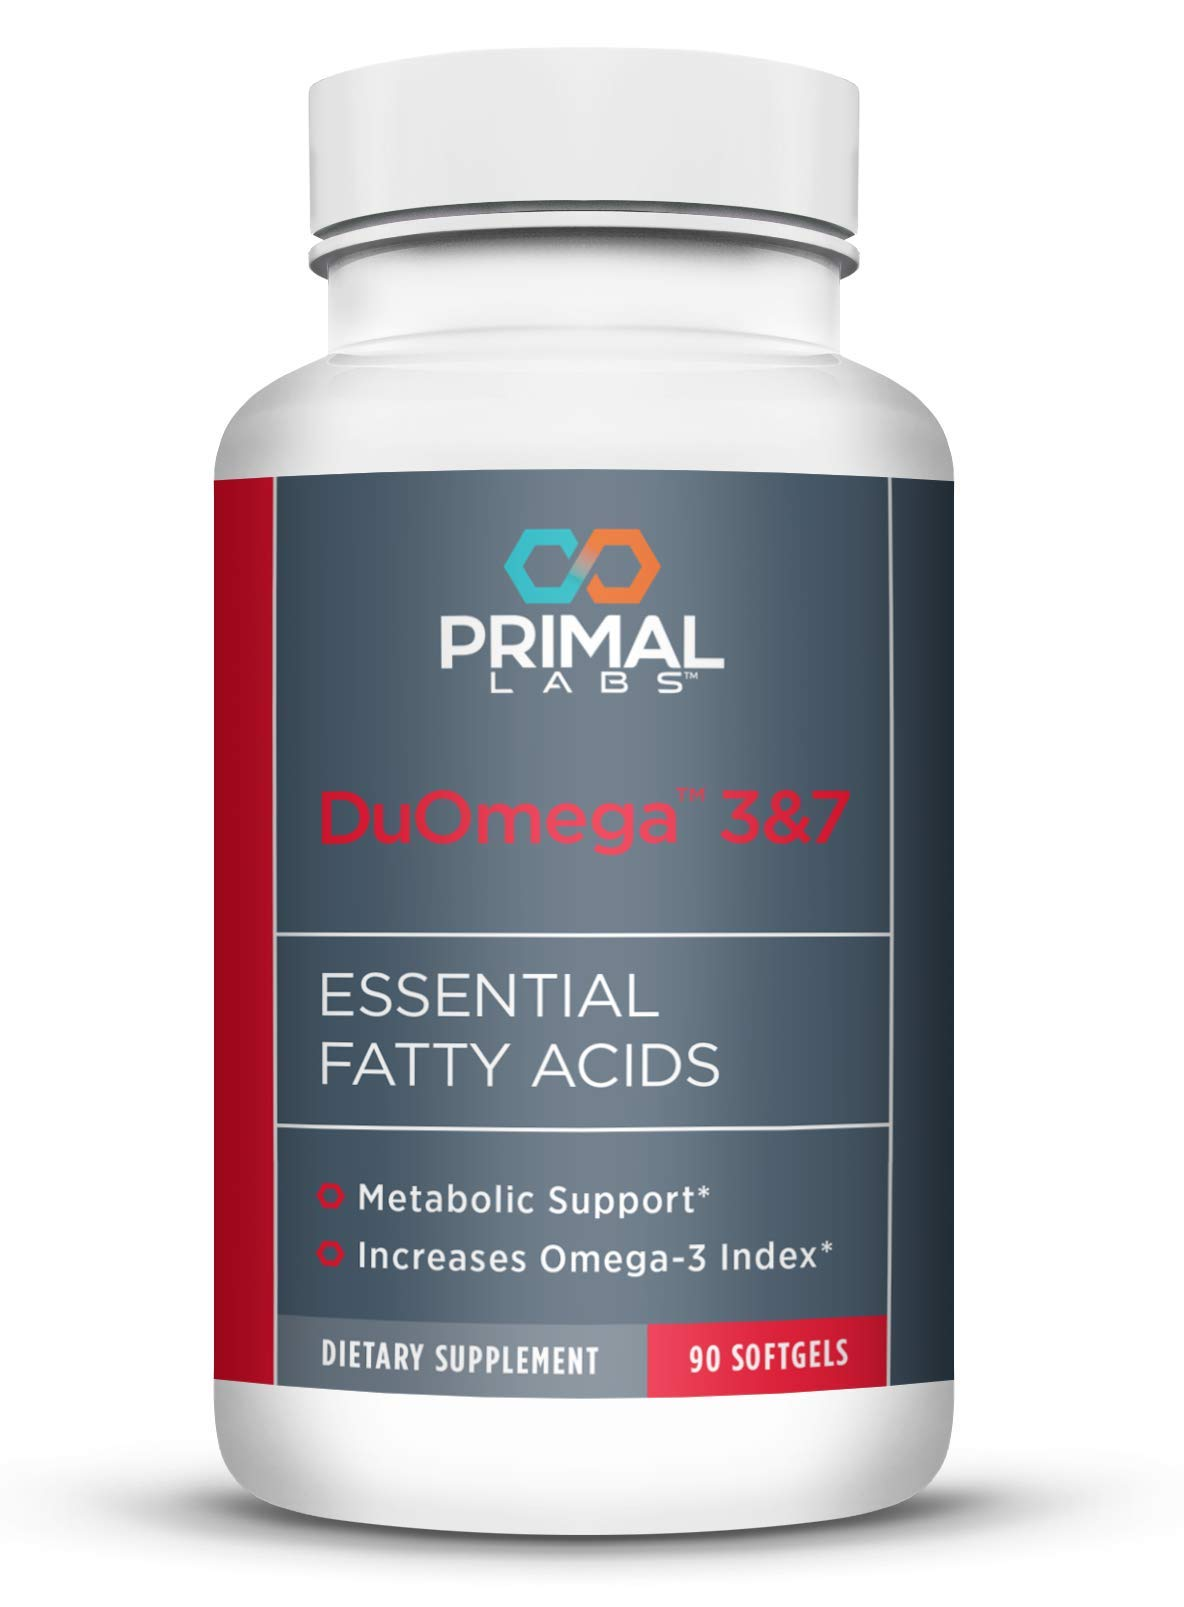 Primal Labs - DuOmega 3&7, Essential Omega-7, Omega-3 Fatty Acid Fish Oil, with EPA DHA and Palmitoleic Acid, Helps with Cholesterol and Healthy Weight